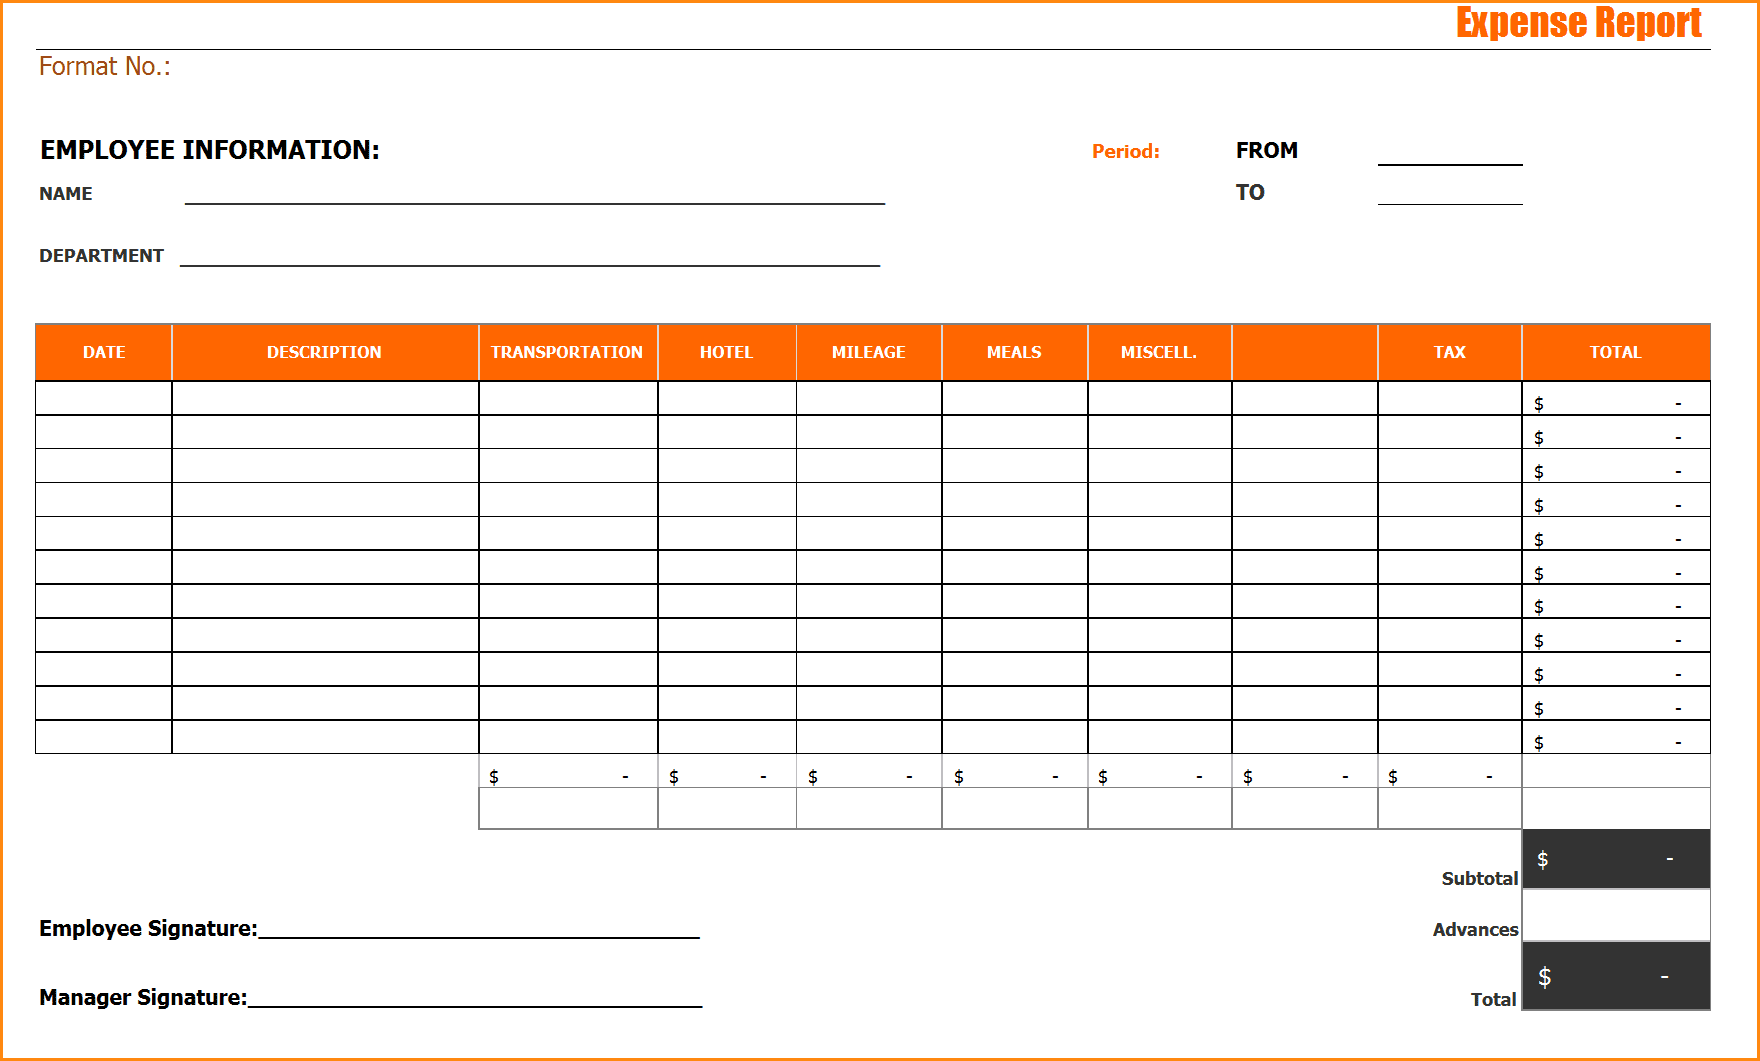 Example Of Excel Expense Report And Travel Expense Report Template